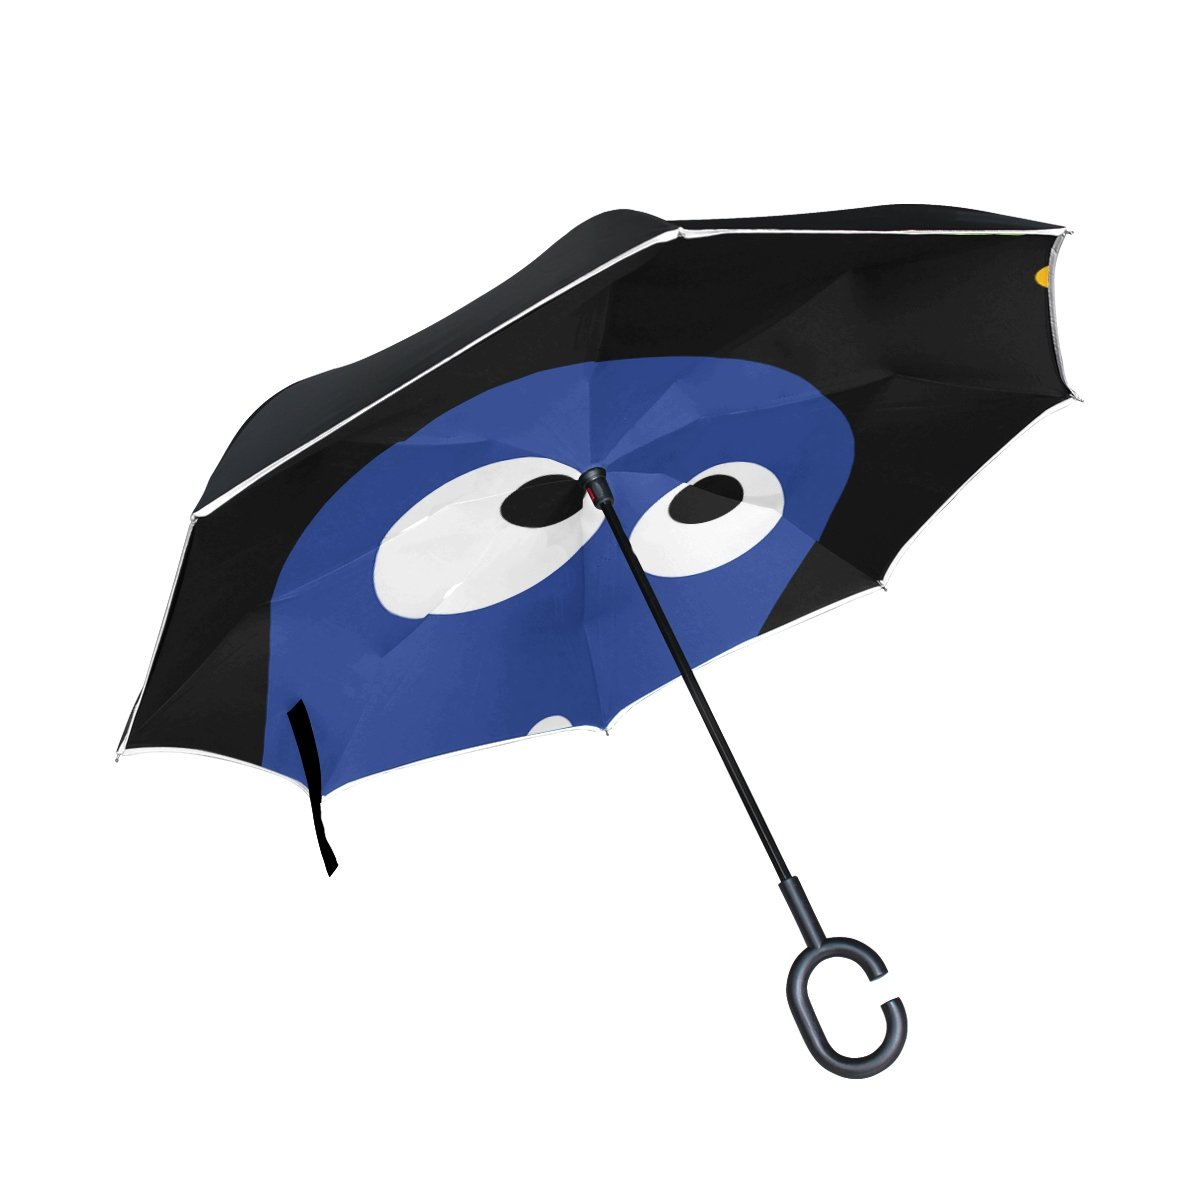 YUMOING Double Layer Inverted Crazy Monster Fun Funny Alien Extraterrestrial Umbrellas Reverse Folding Umbrella Windproof Uv Protection Big Straight Umbrella For Car Rain Outdoor With C-shaped Handle